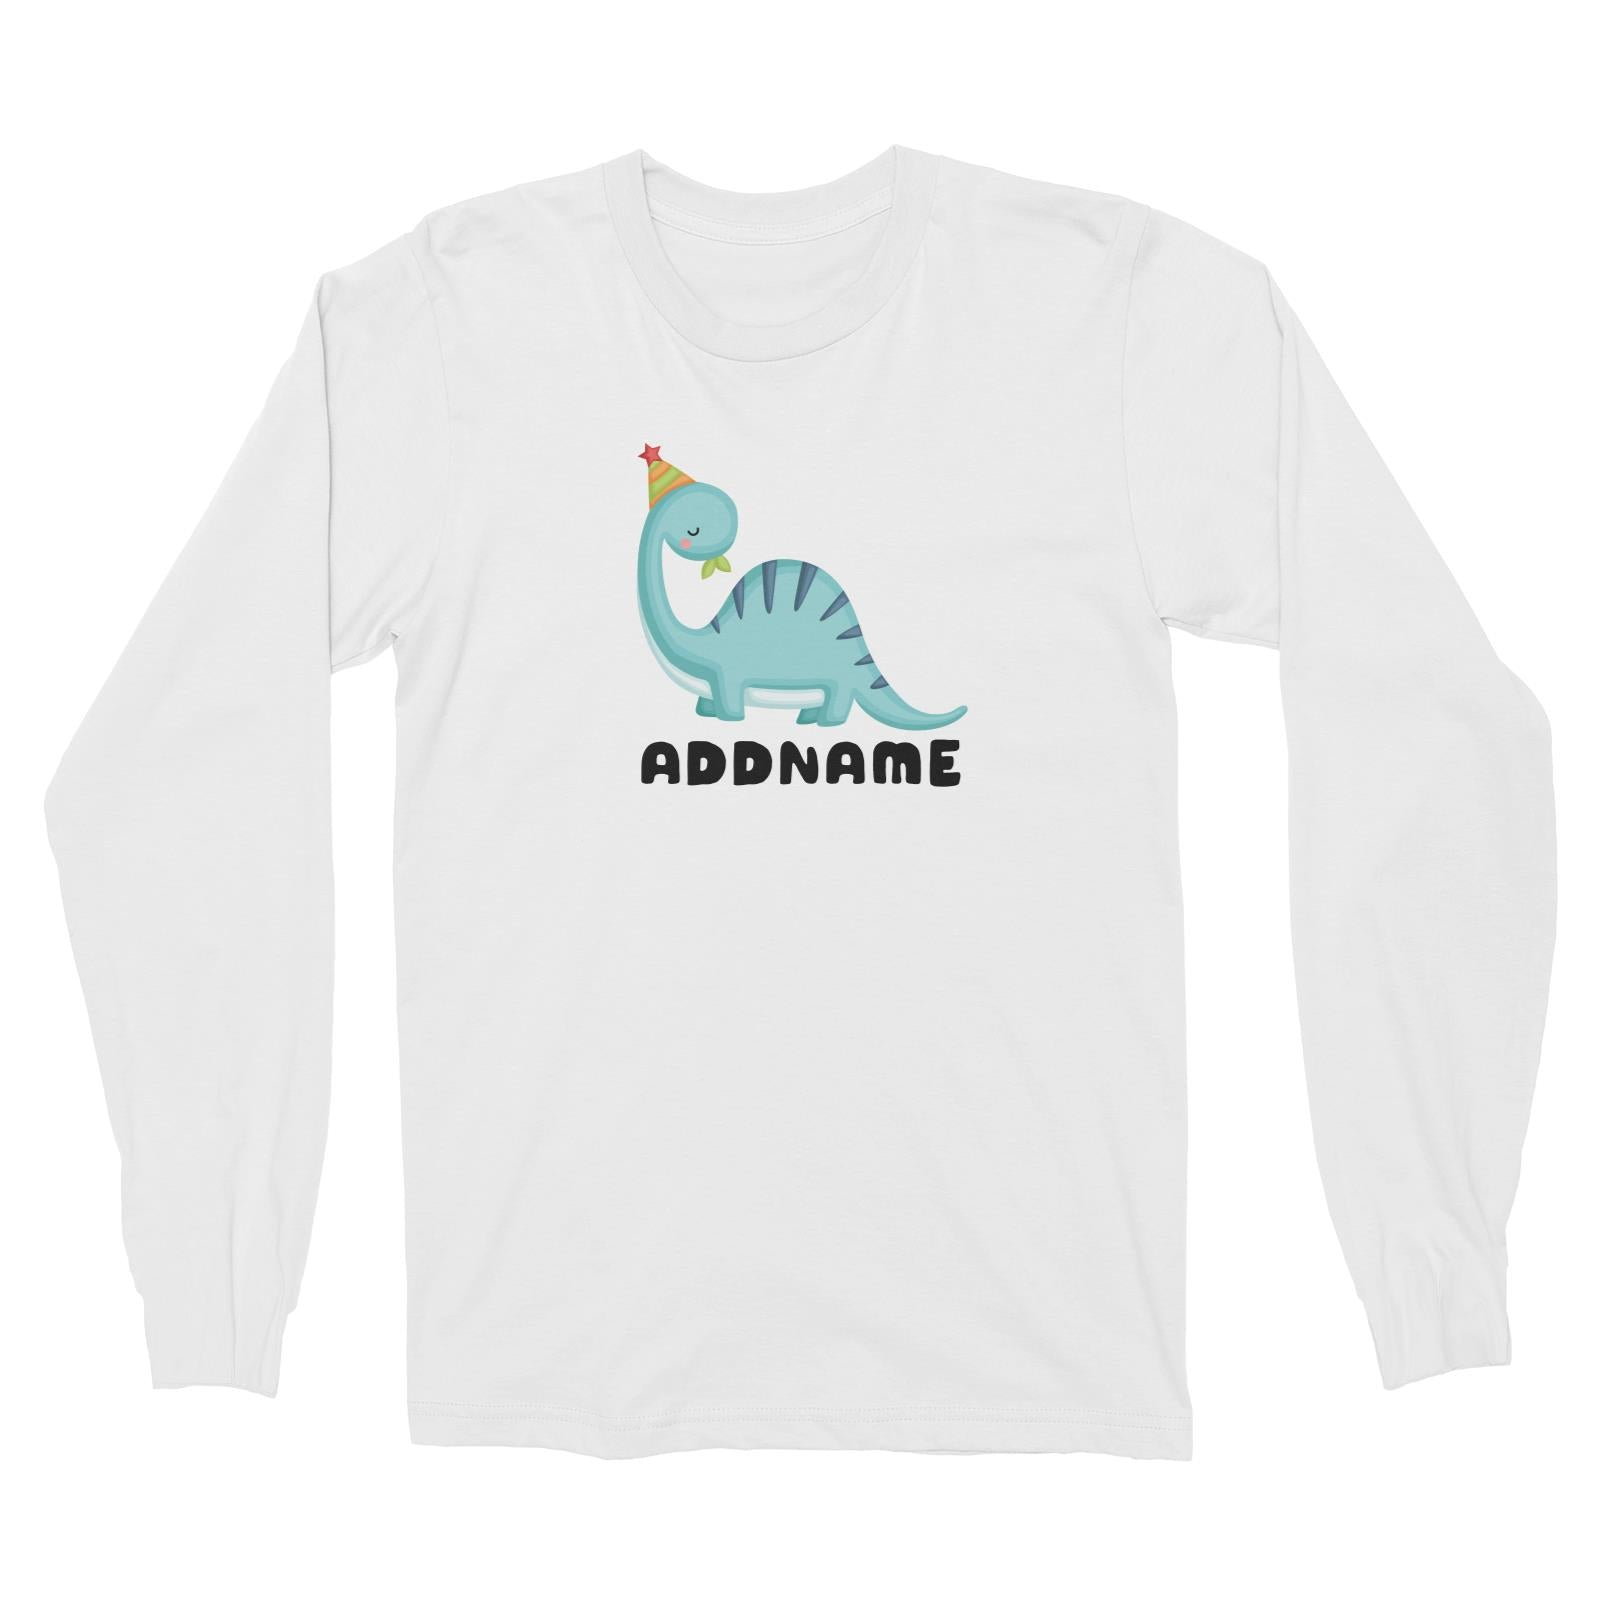 Birthday Dinosaur Happy Blue Long Neck With Party Hat Addname Long Sleeve Unisex T-Shirt